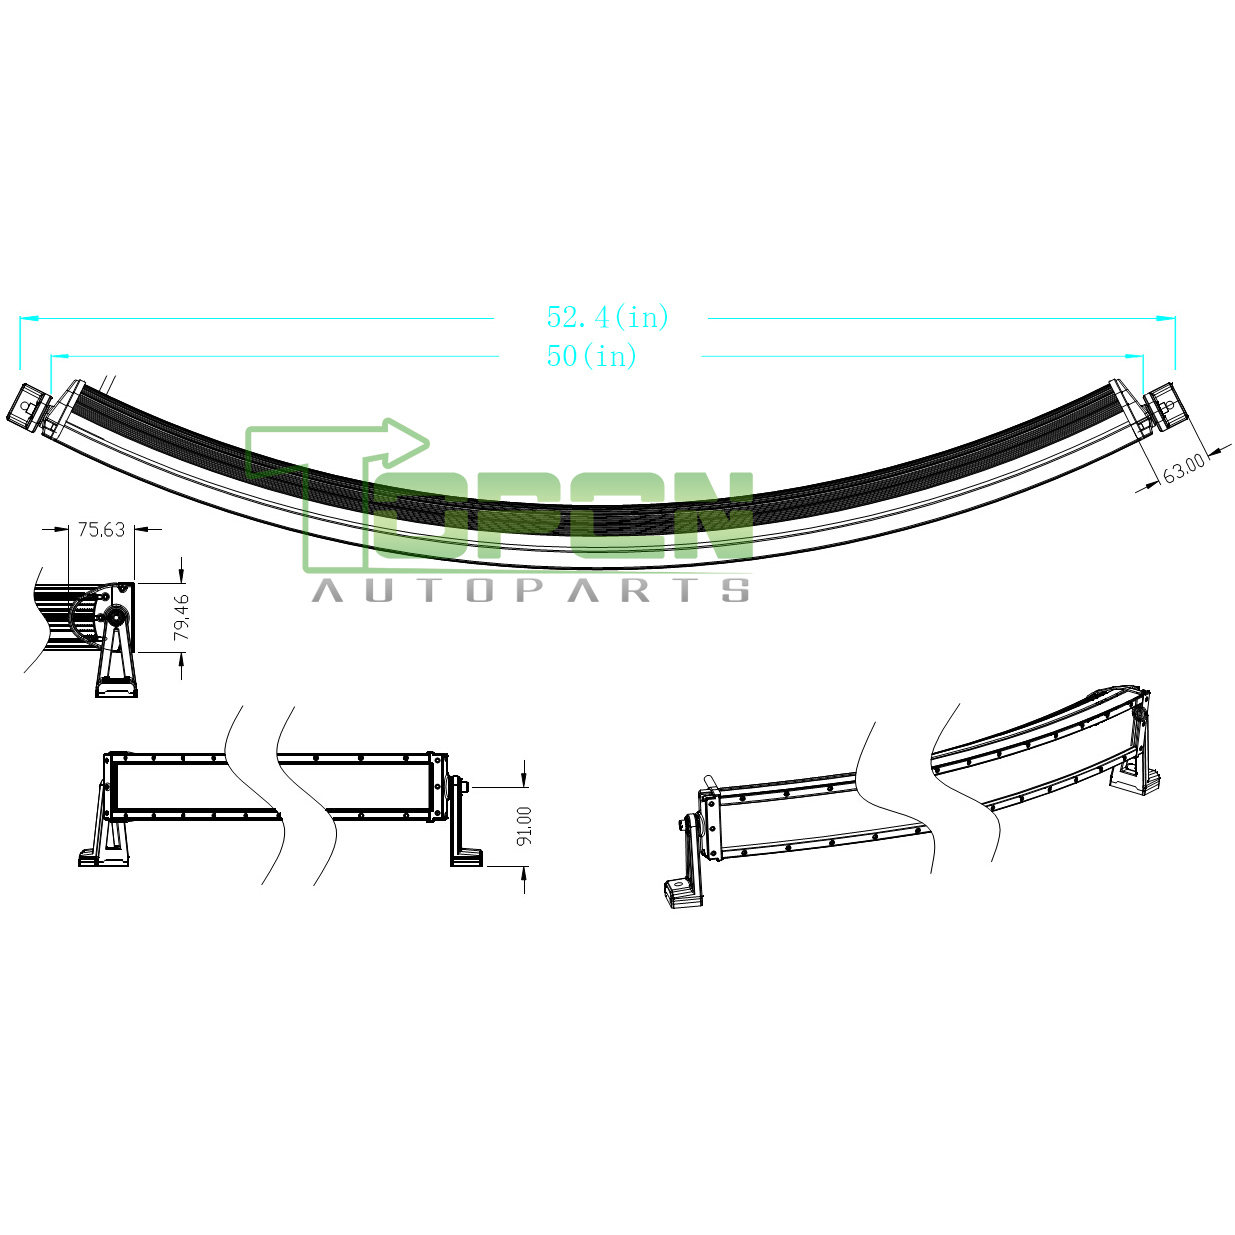 288w 50inch Curved Led Light Bar Spot Flood Combo Work Driving Atv Suv Offroad